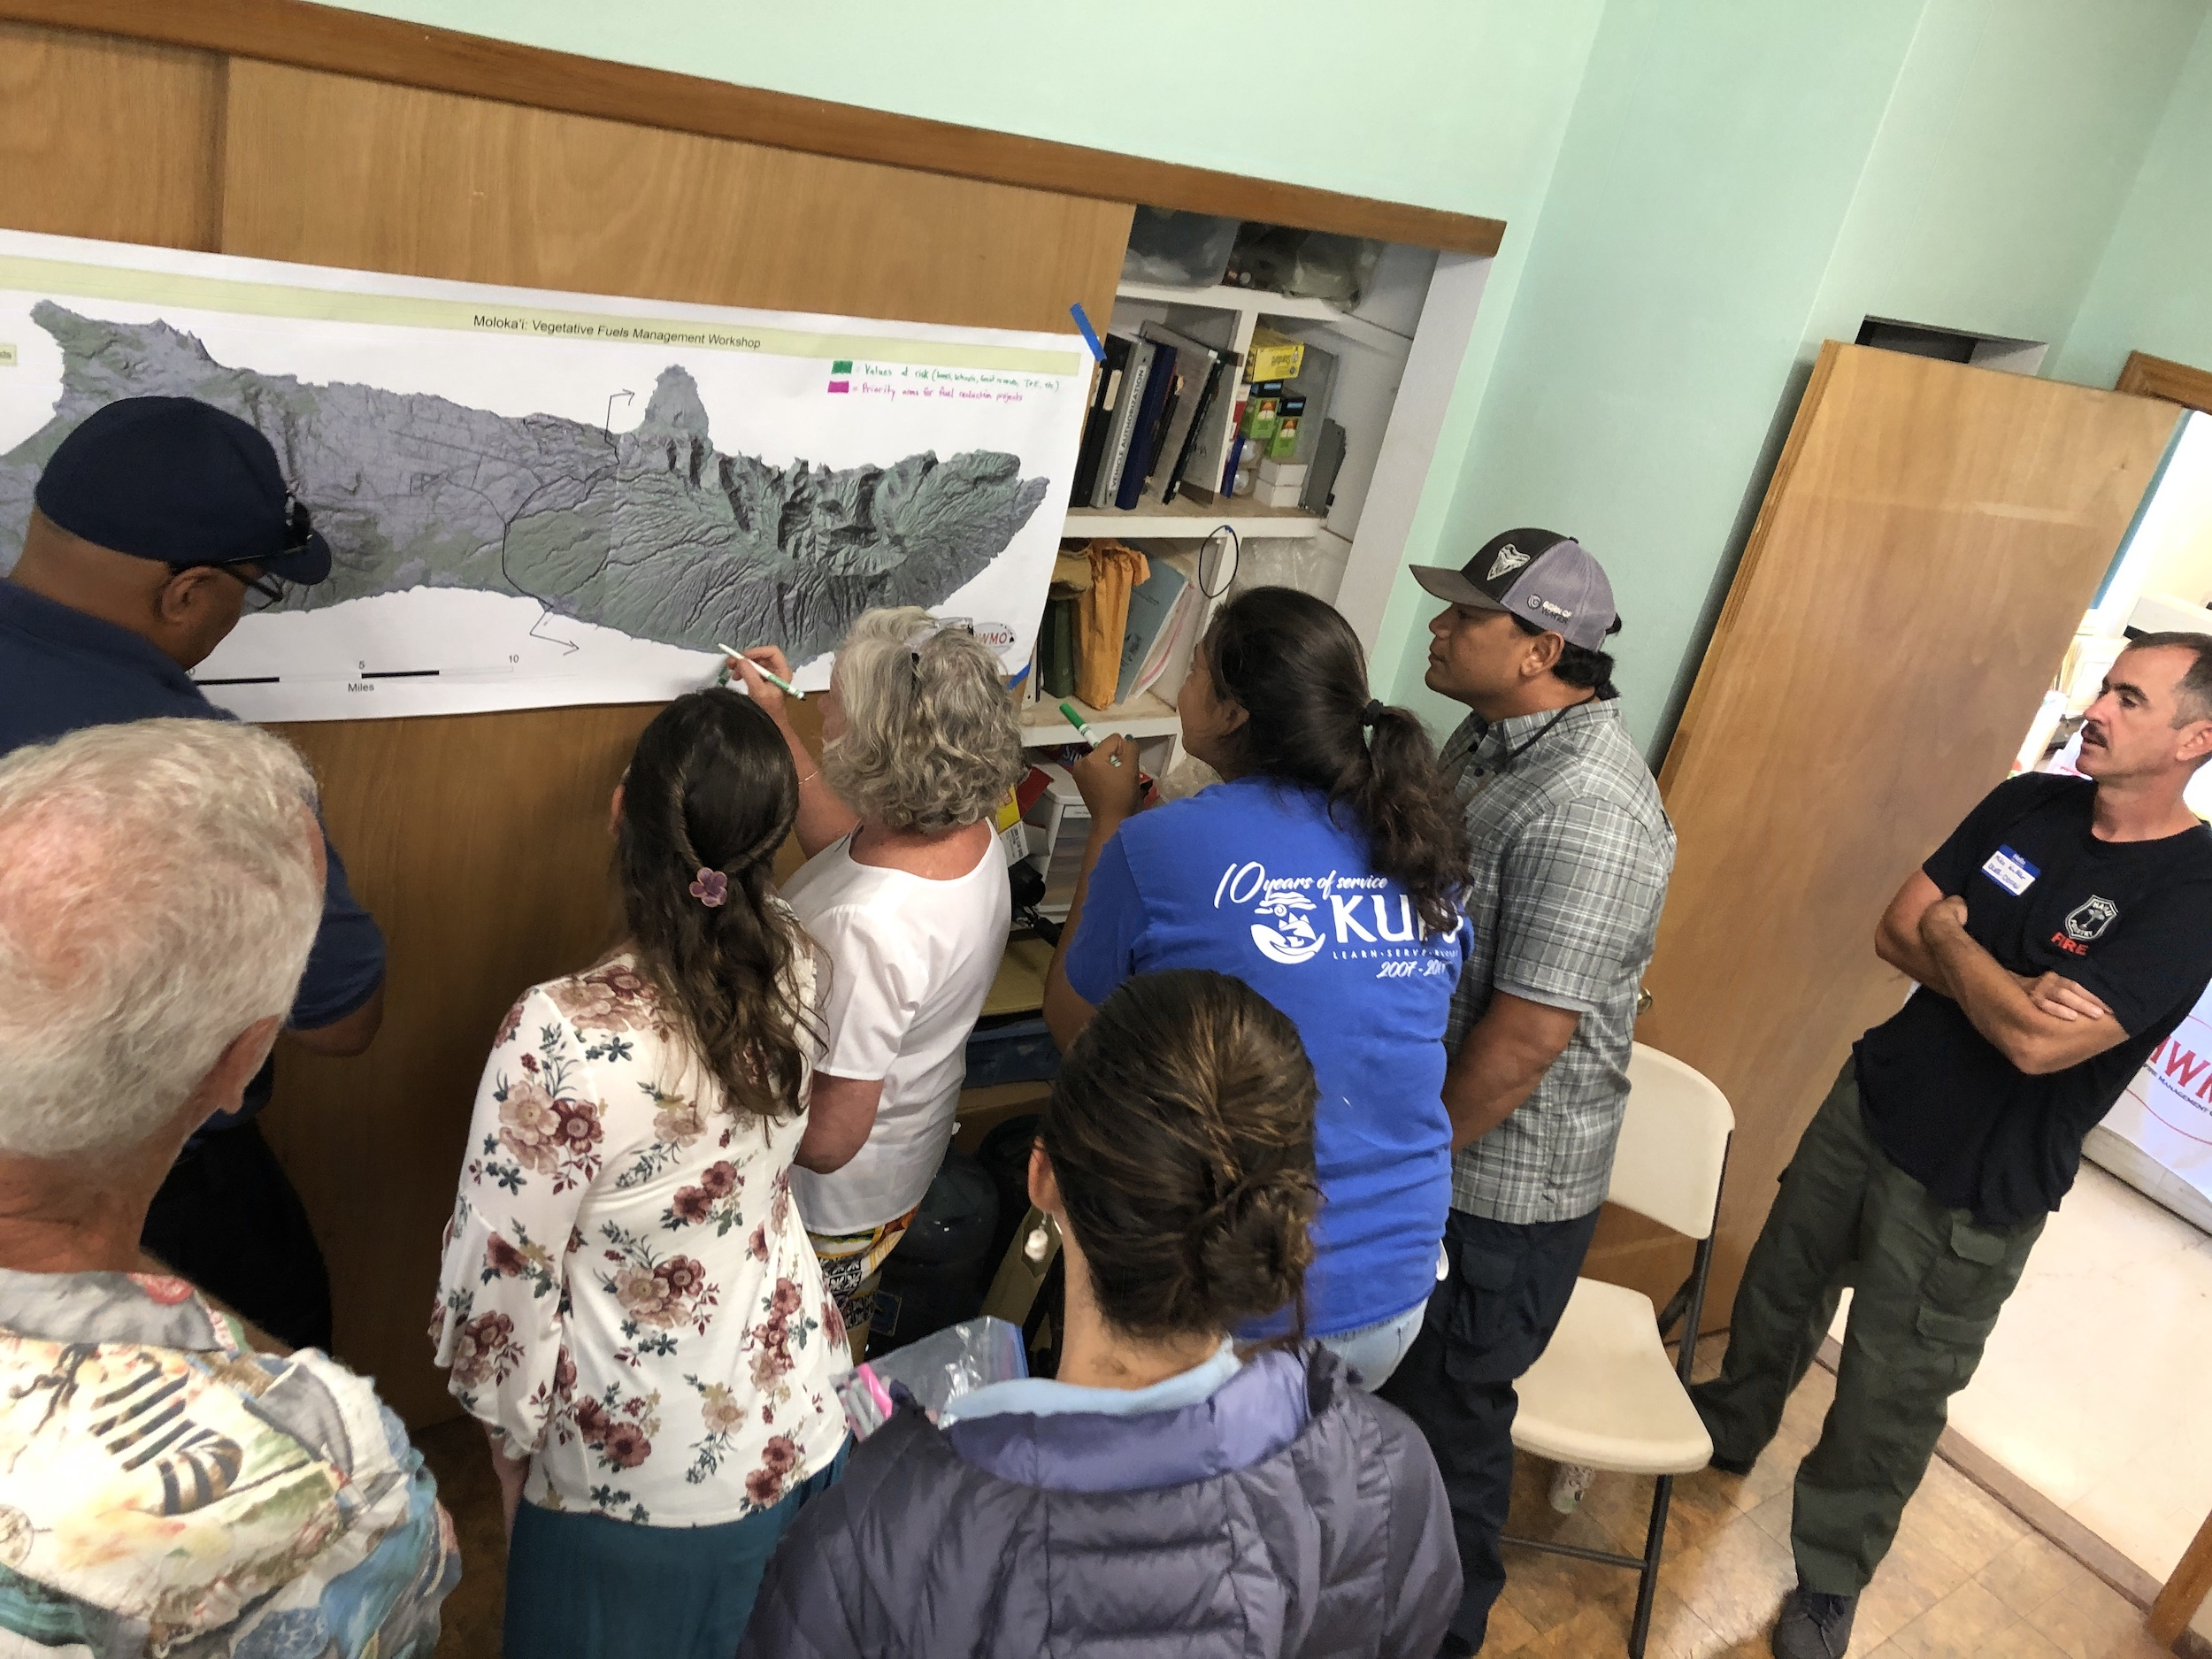 Molokai Vegetative Fuels Management Collaborative Action Planning and Mapping Workshop_4_2_2019_8.JPG